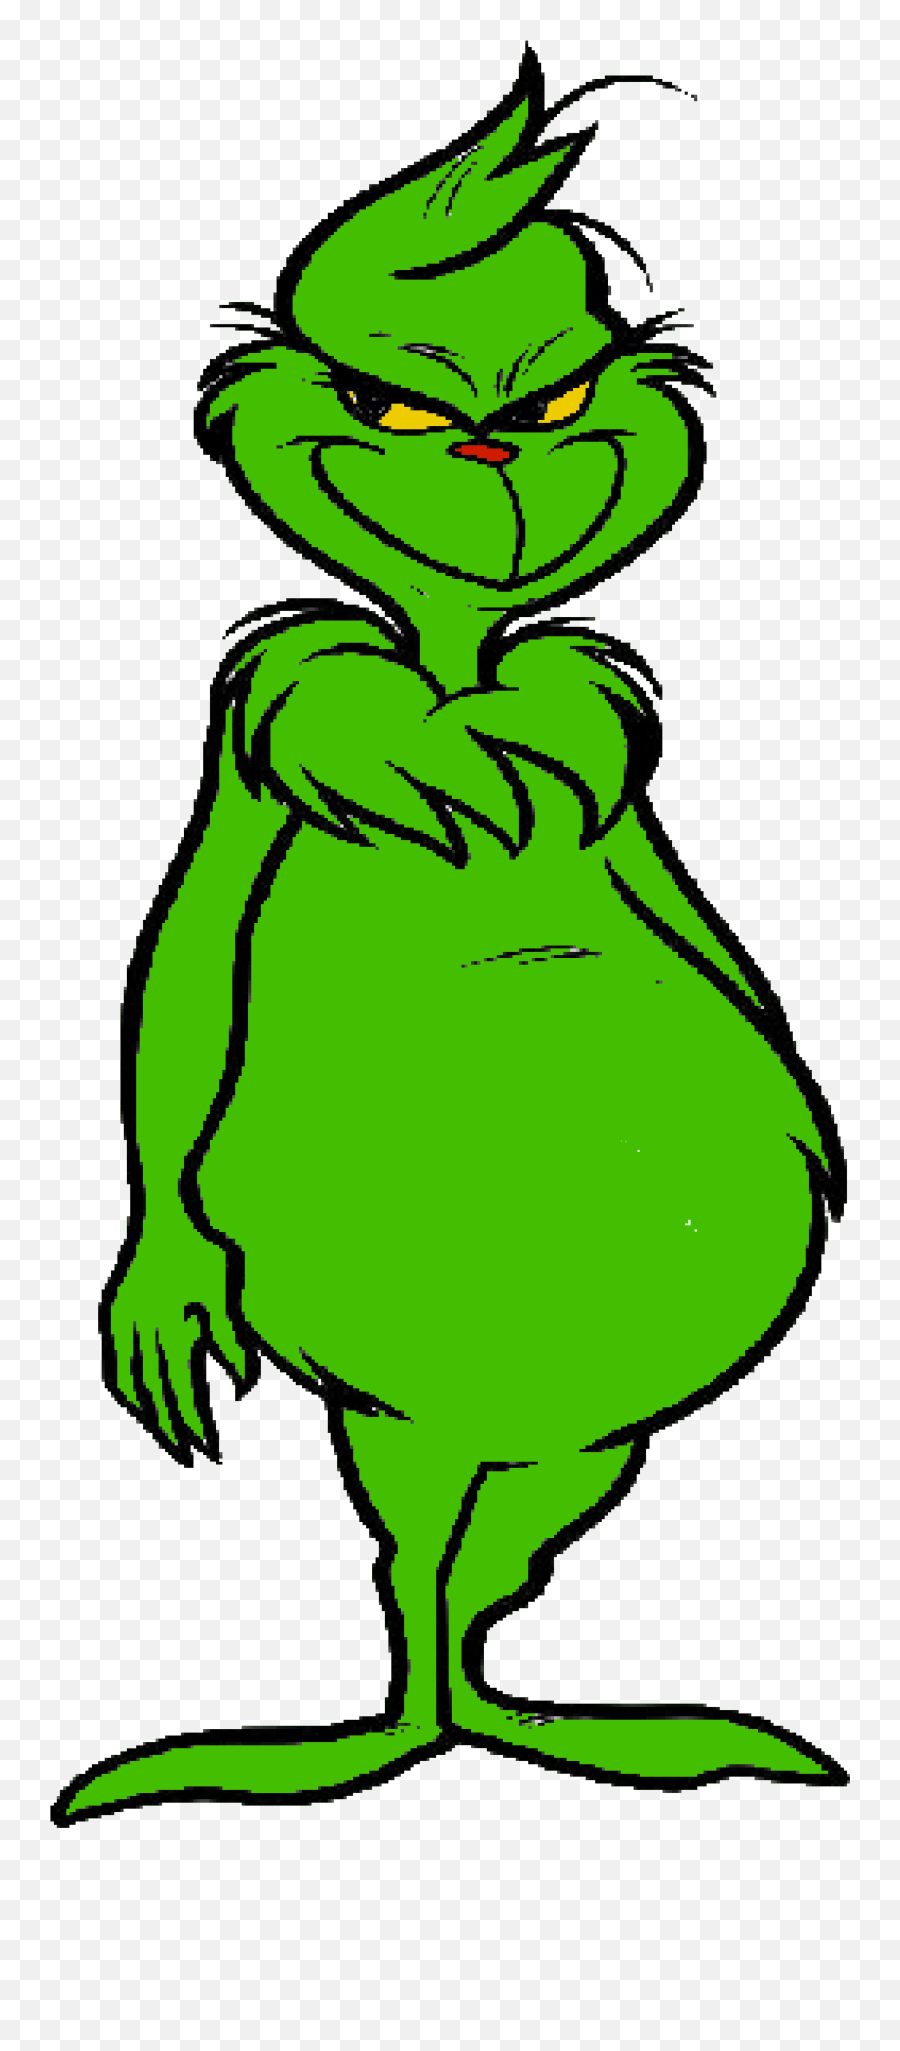 Grinch Heart Jpg Library Png Files - Grinch Clipart Emoji